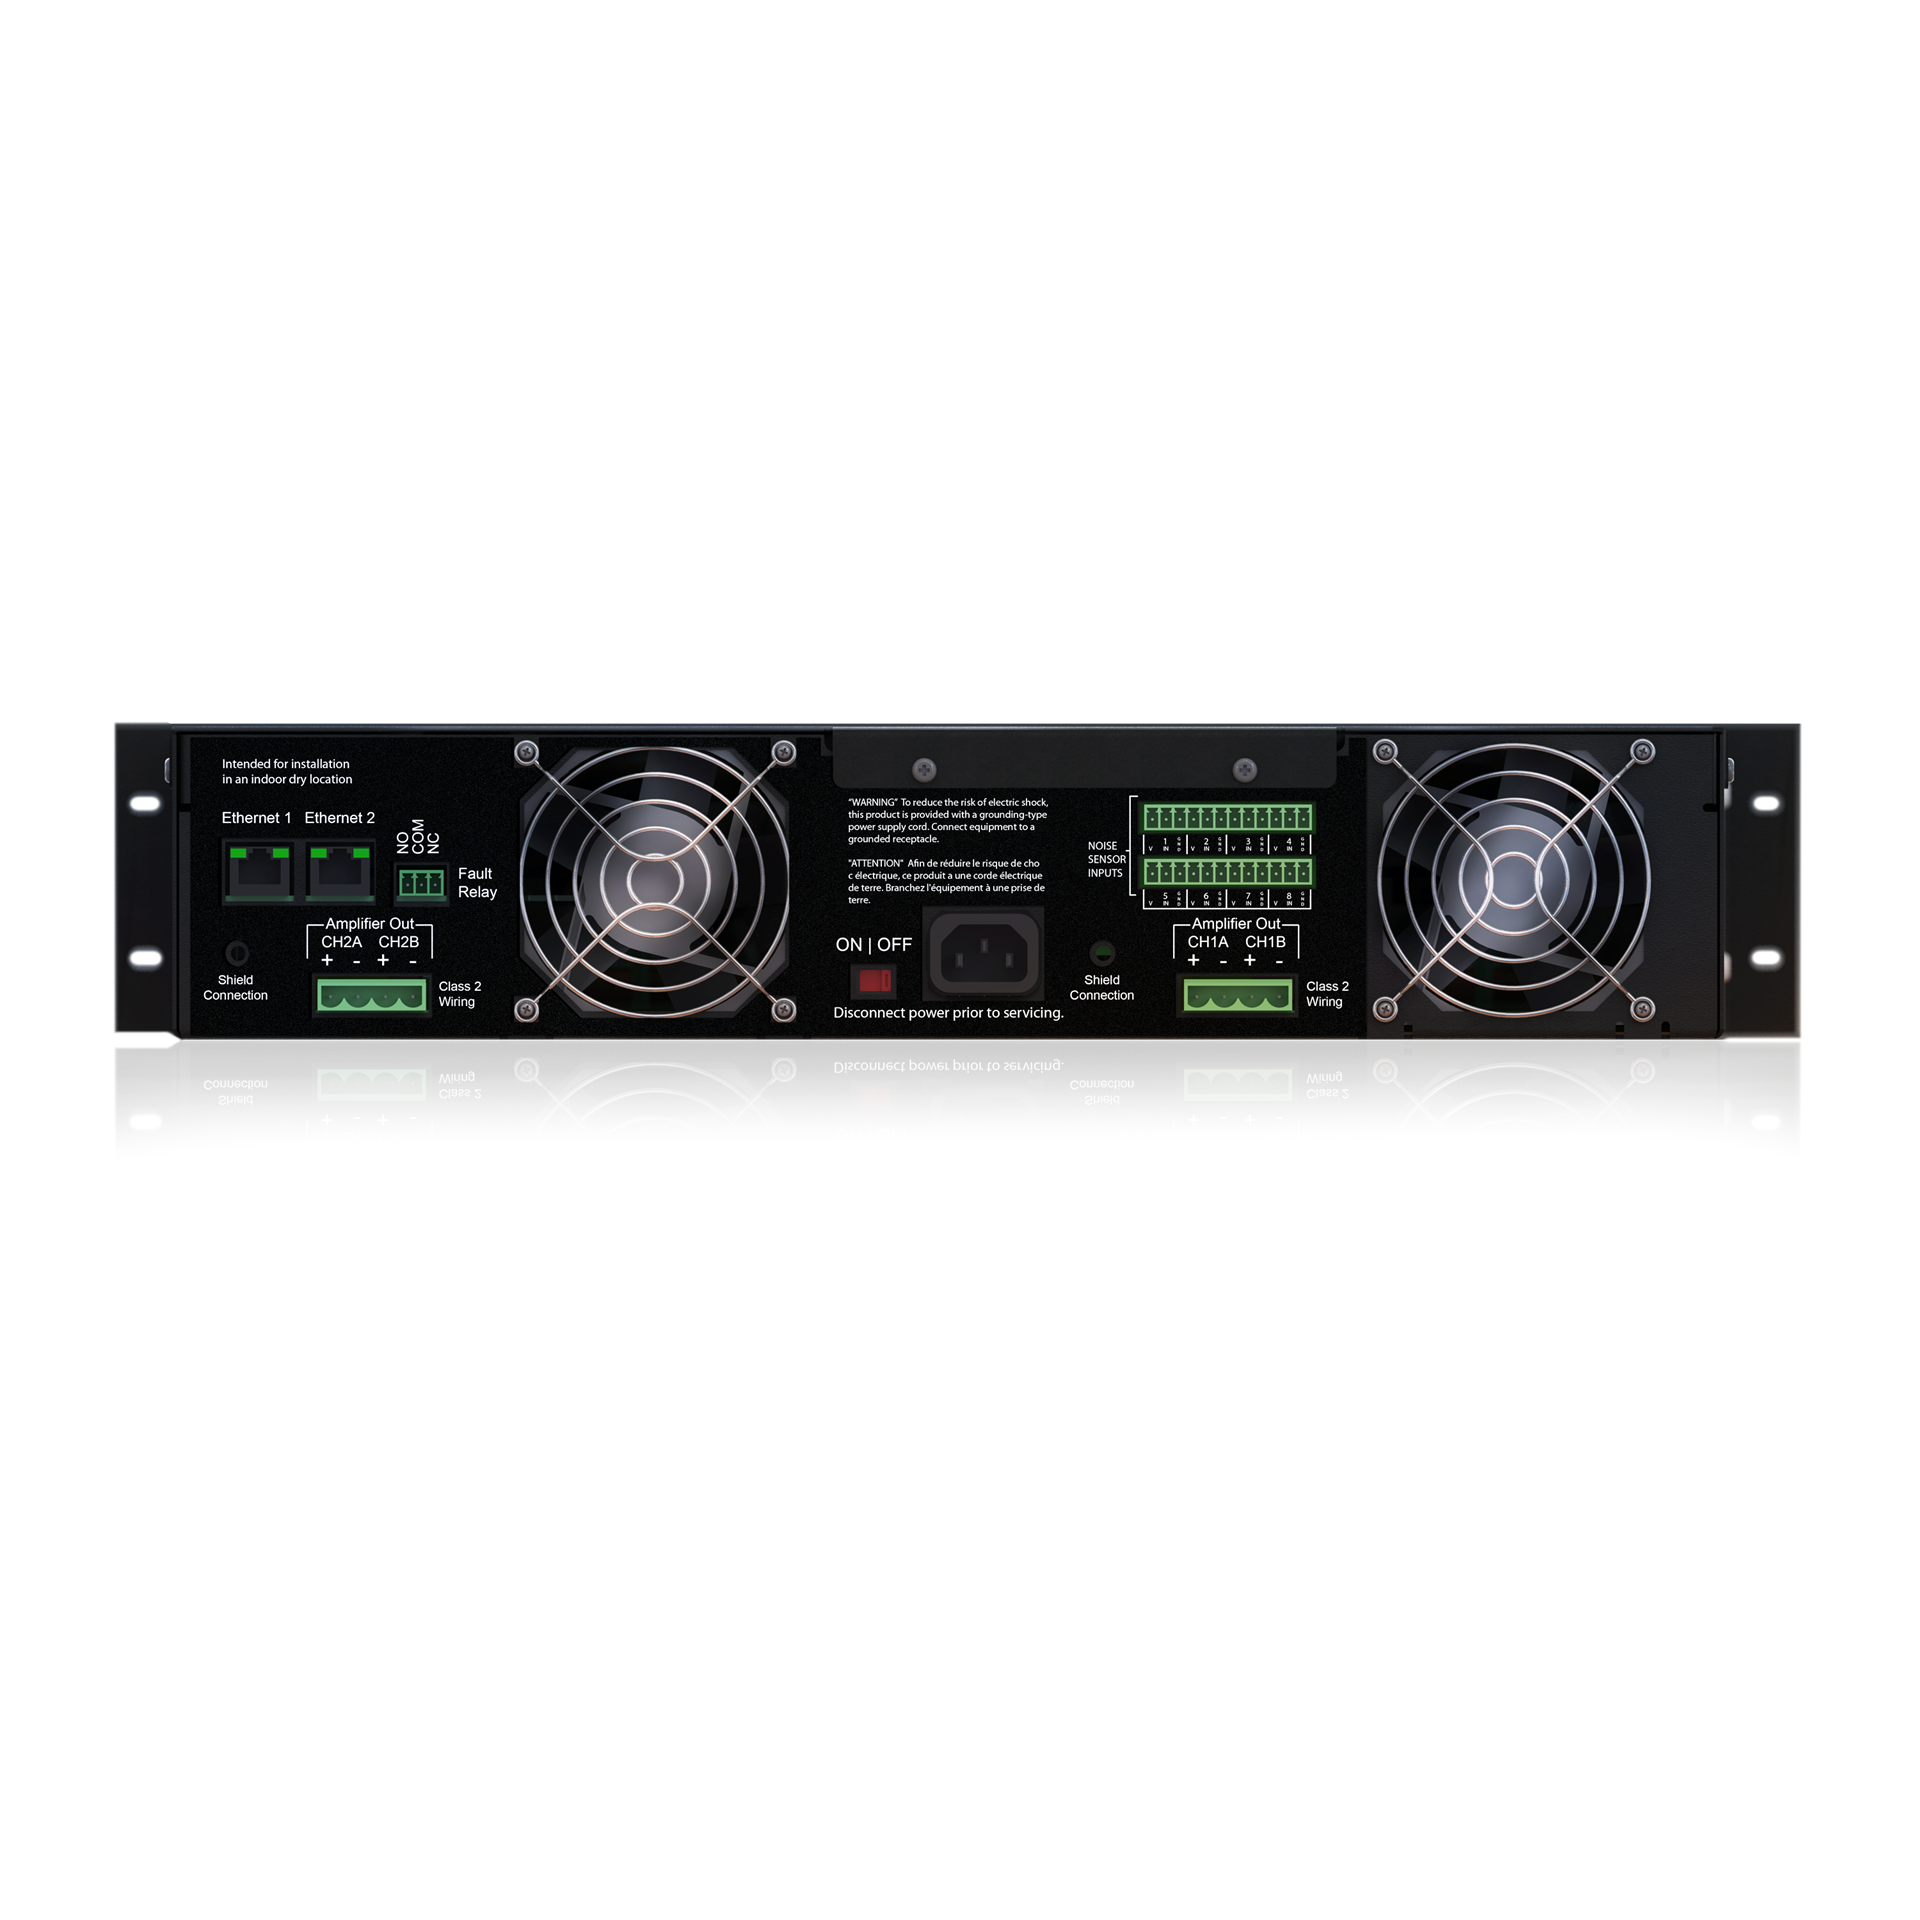 4 Channel 2400 Watt 100v Power Amplifier With Ul1711 Safety Listing How To Build Speach Dna2404dh Series 100 Volt Dante Network Audio